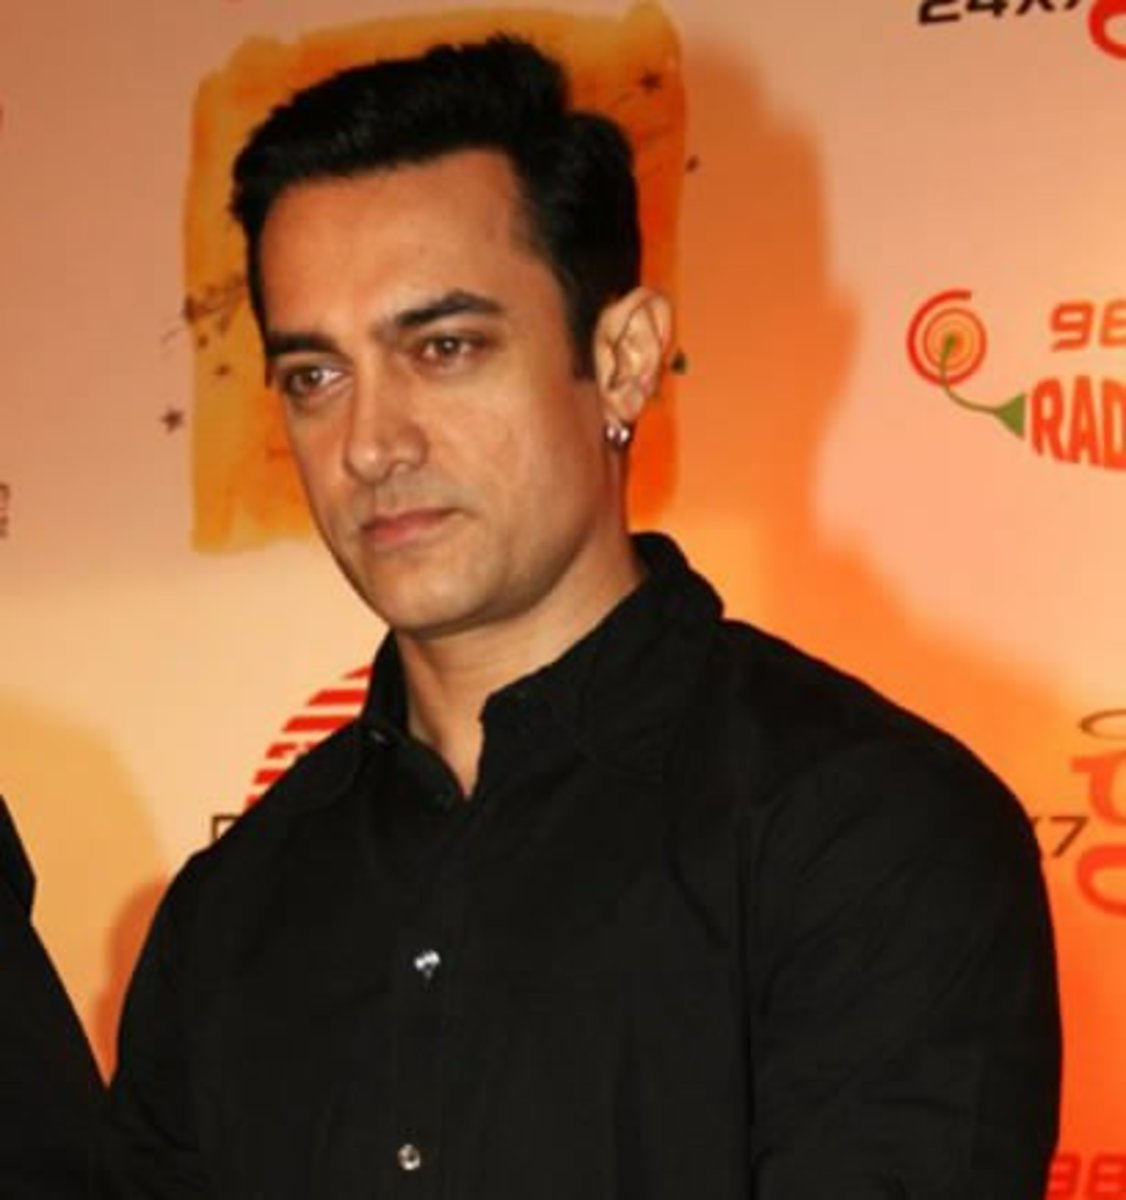 Aamir Khan portrayed the art teacher who helped Ishaan rediscover his confidence and talent as an artist. He also directed Like Stars on Earth.